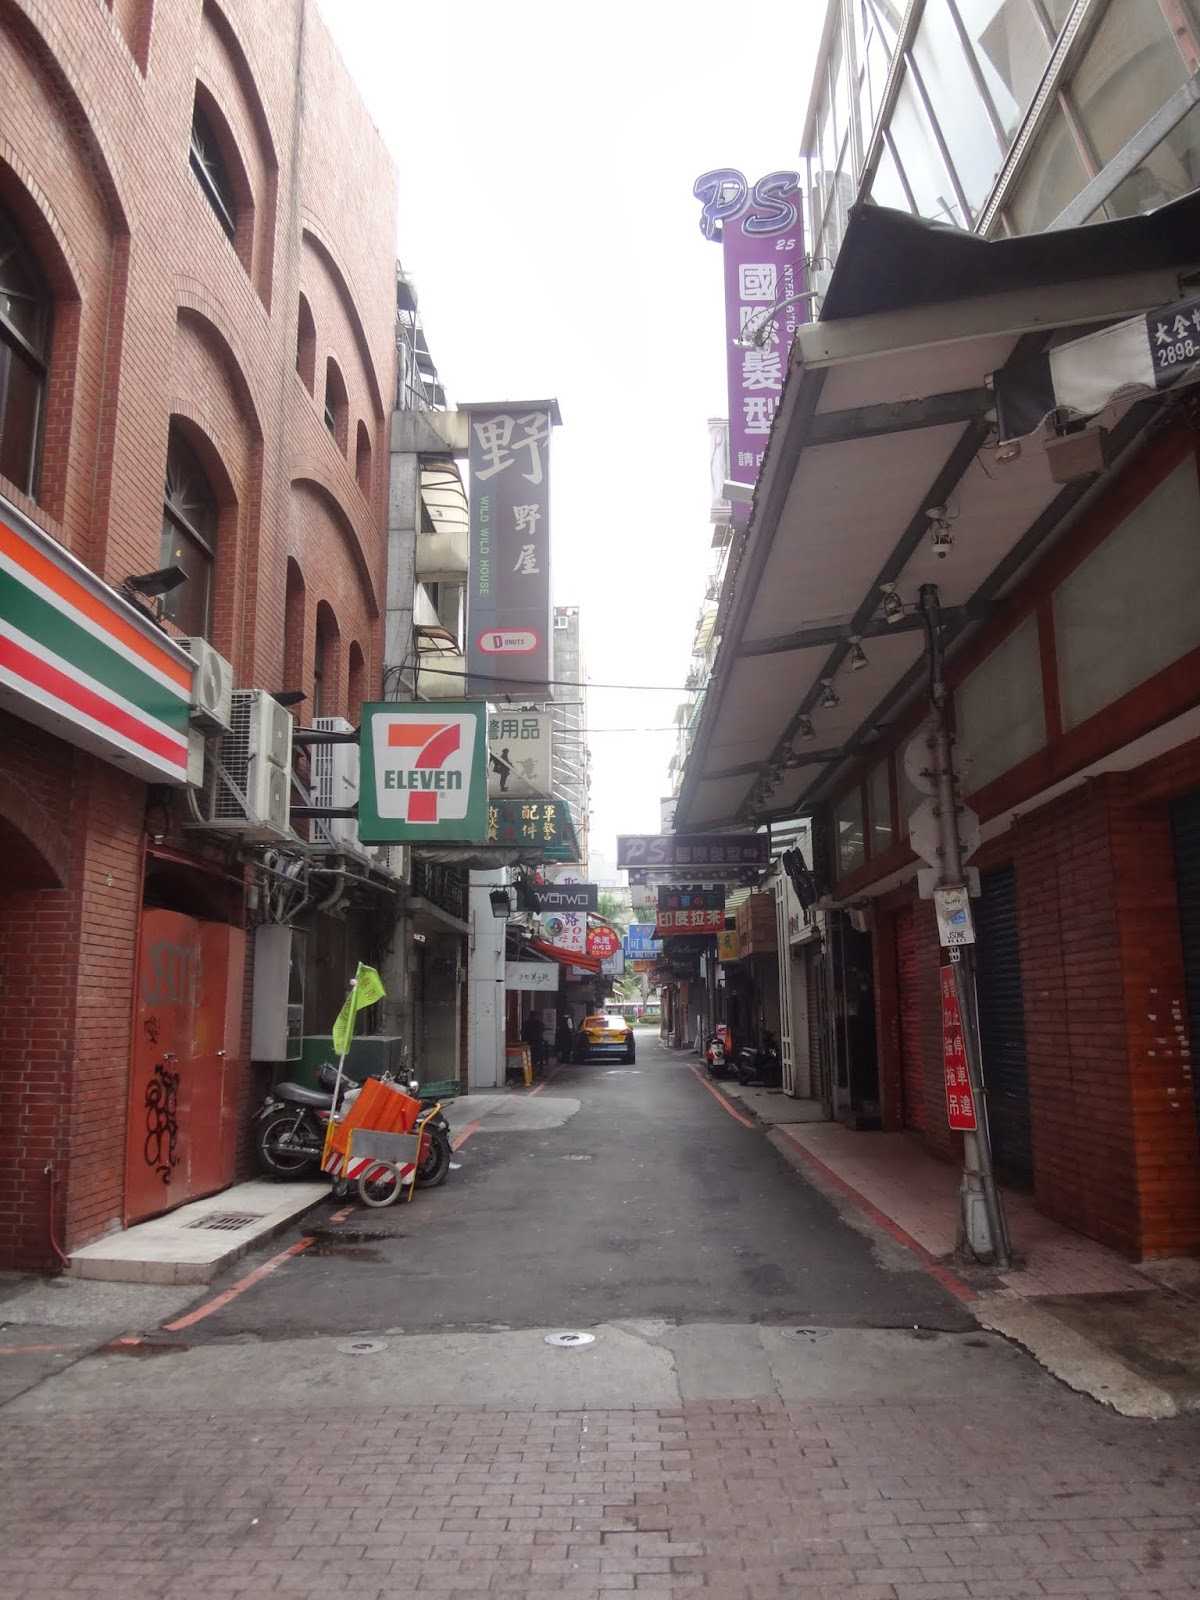 There is a small alley next to 7 Eleven where you walk a few meters and you will see the signboard of Via Hotel